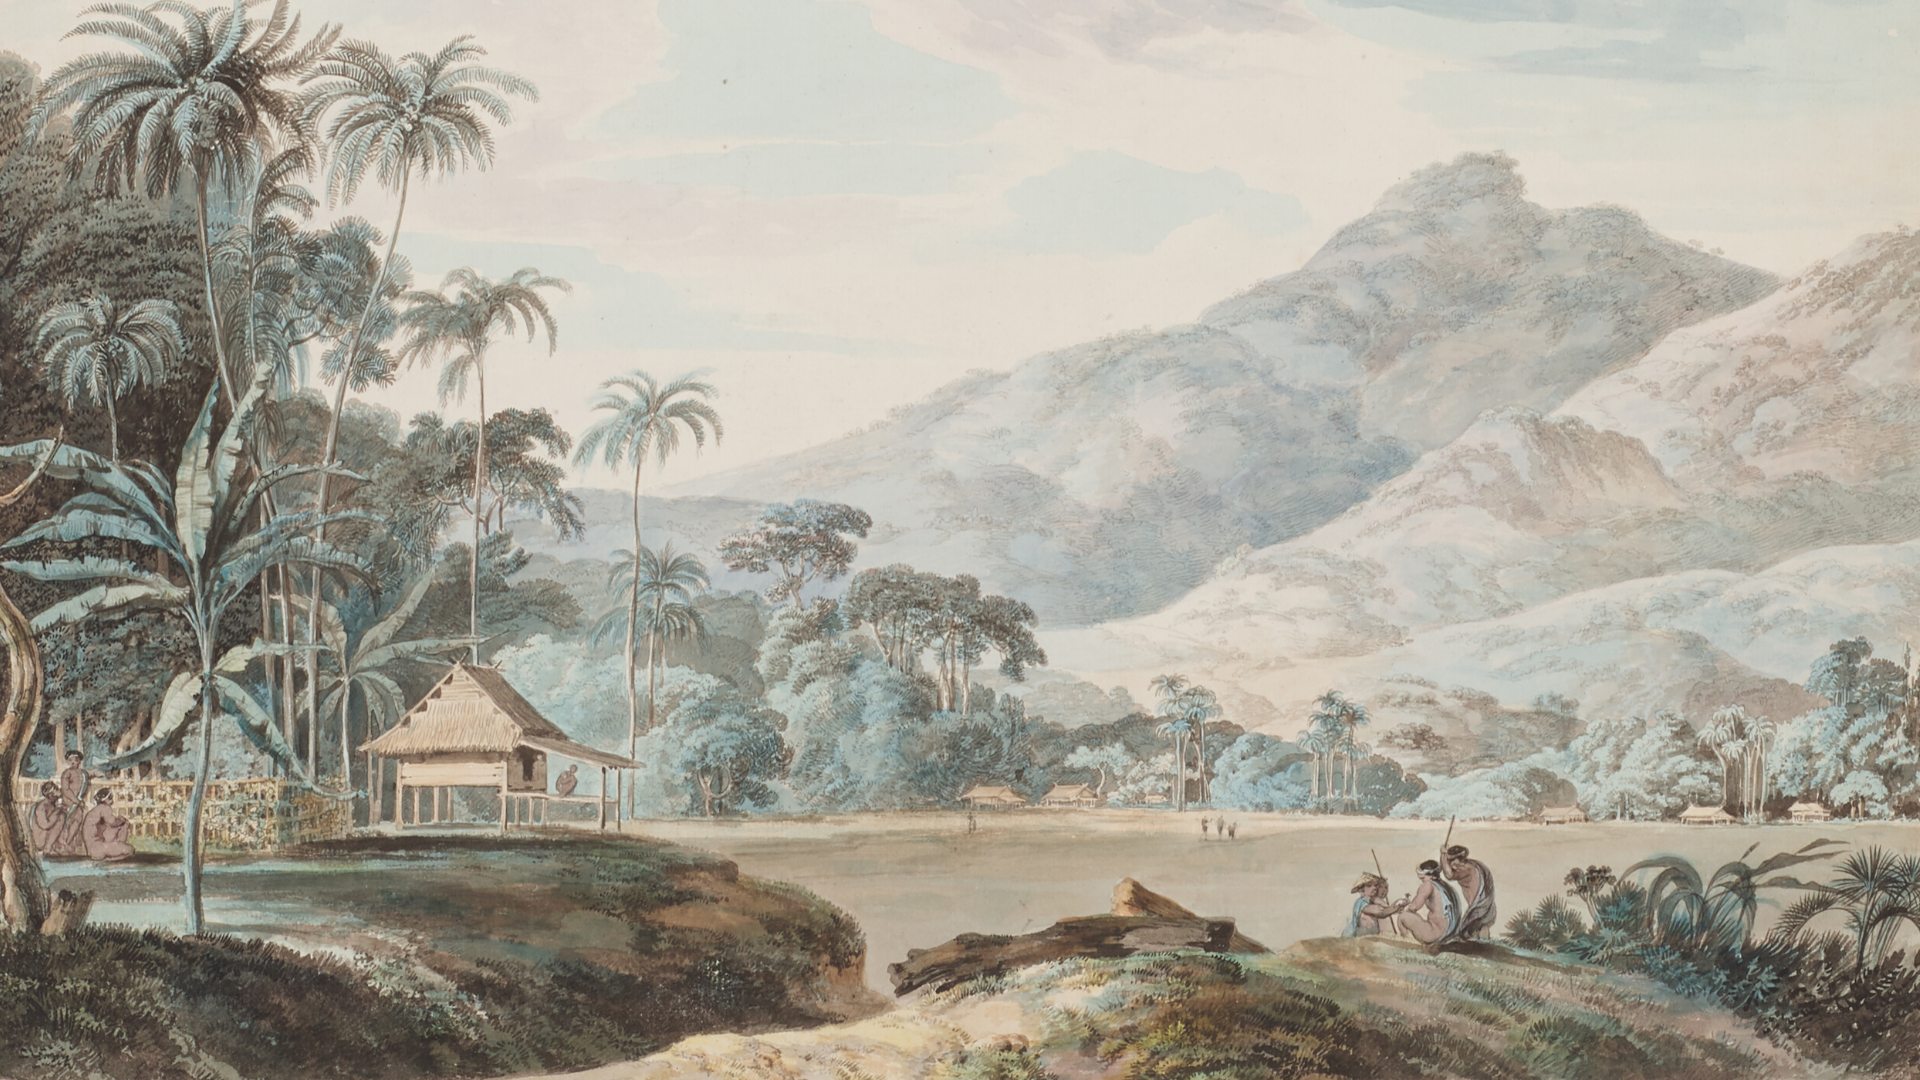 Near Eucheconing on the Island of Java, late 18th century